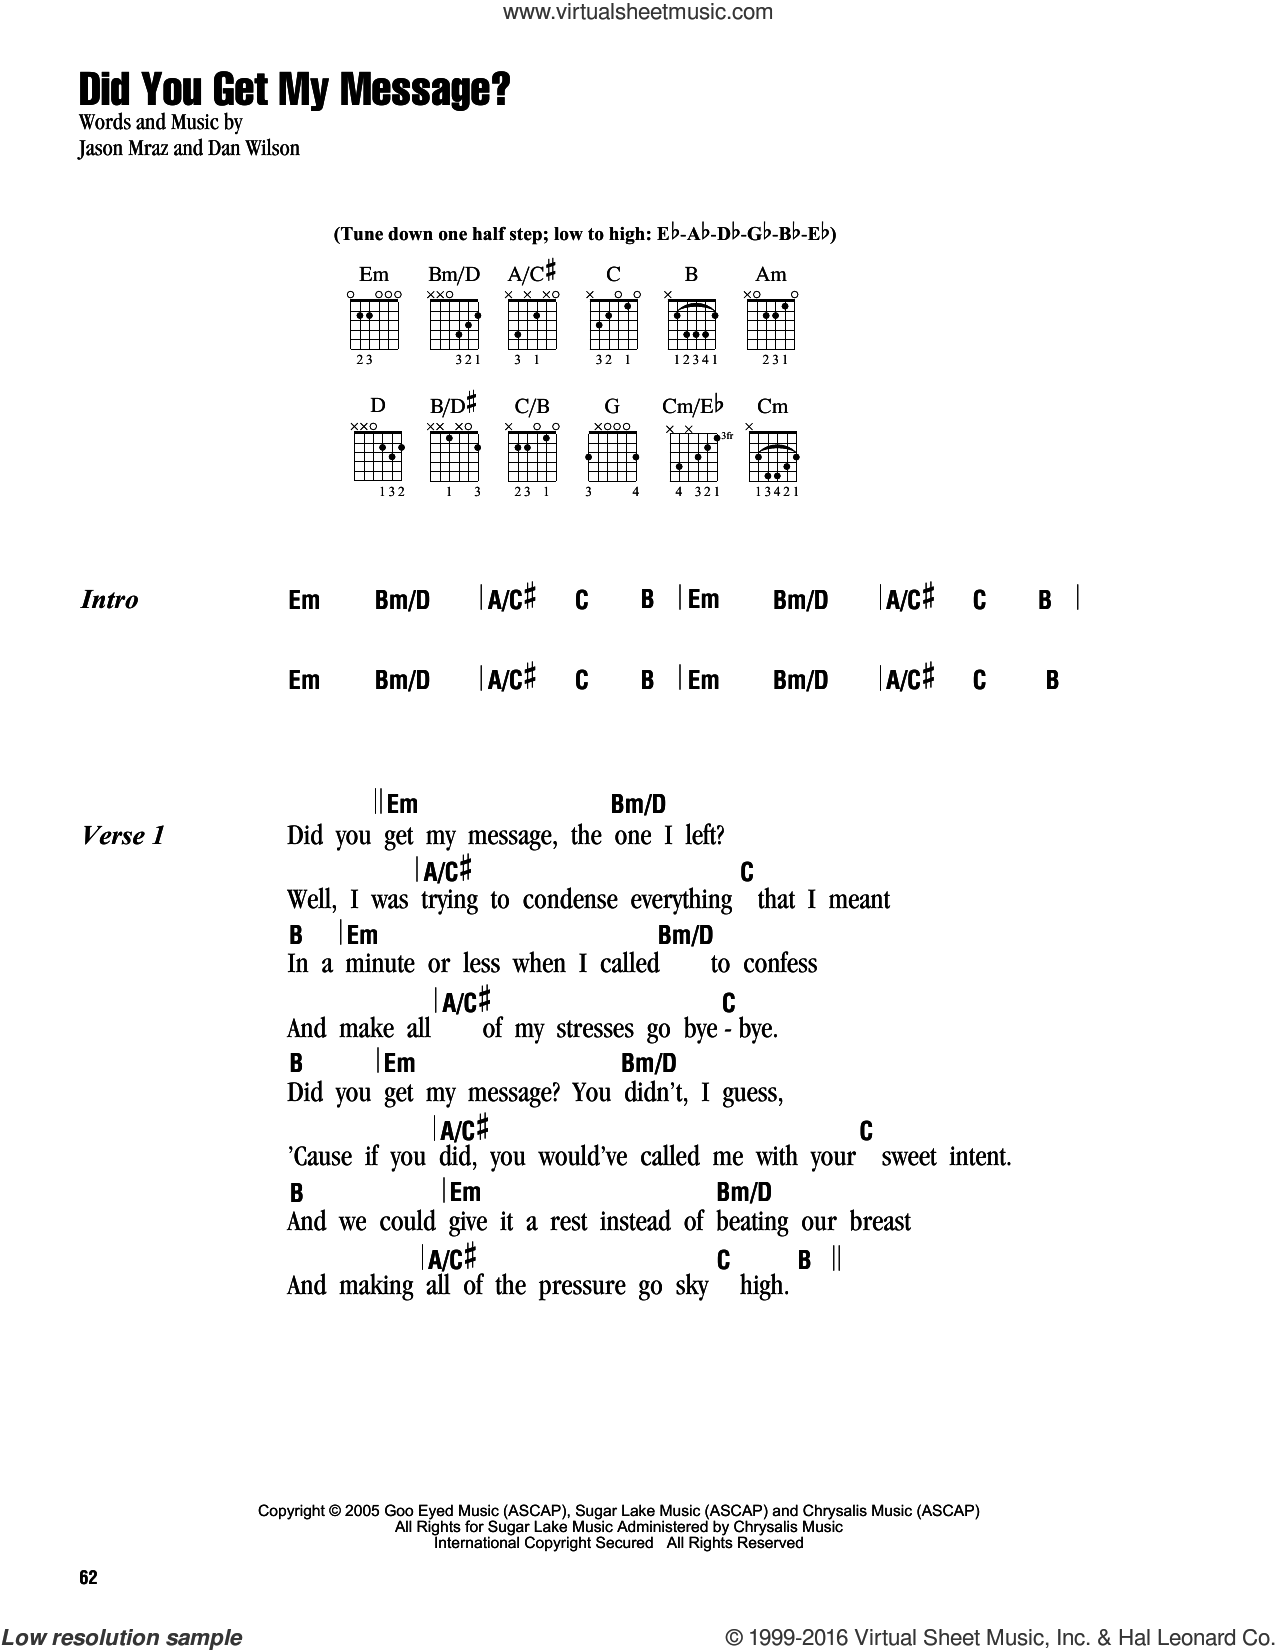 Did You Get My Message? sheet music for guitar (chords) by Dan Wilson and Jason Mraz. Score Image Preview.